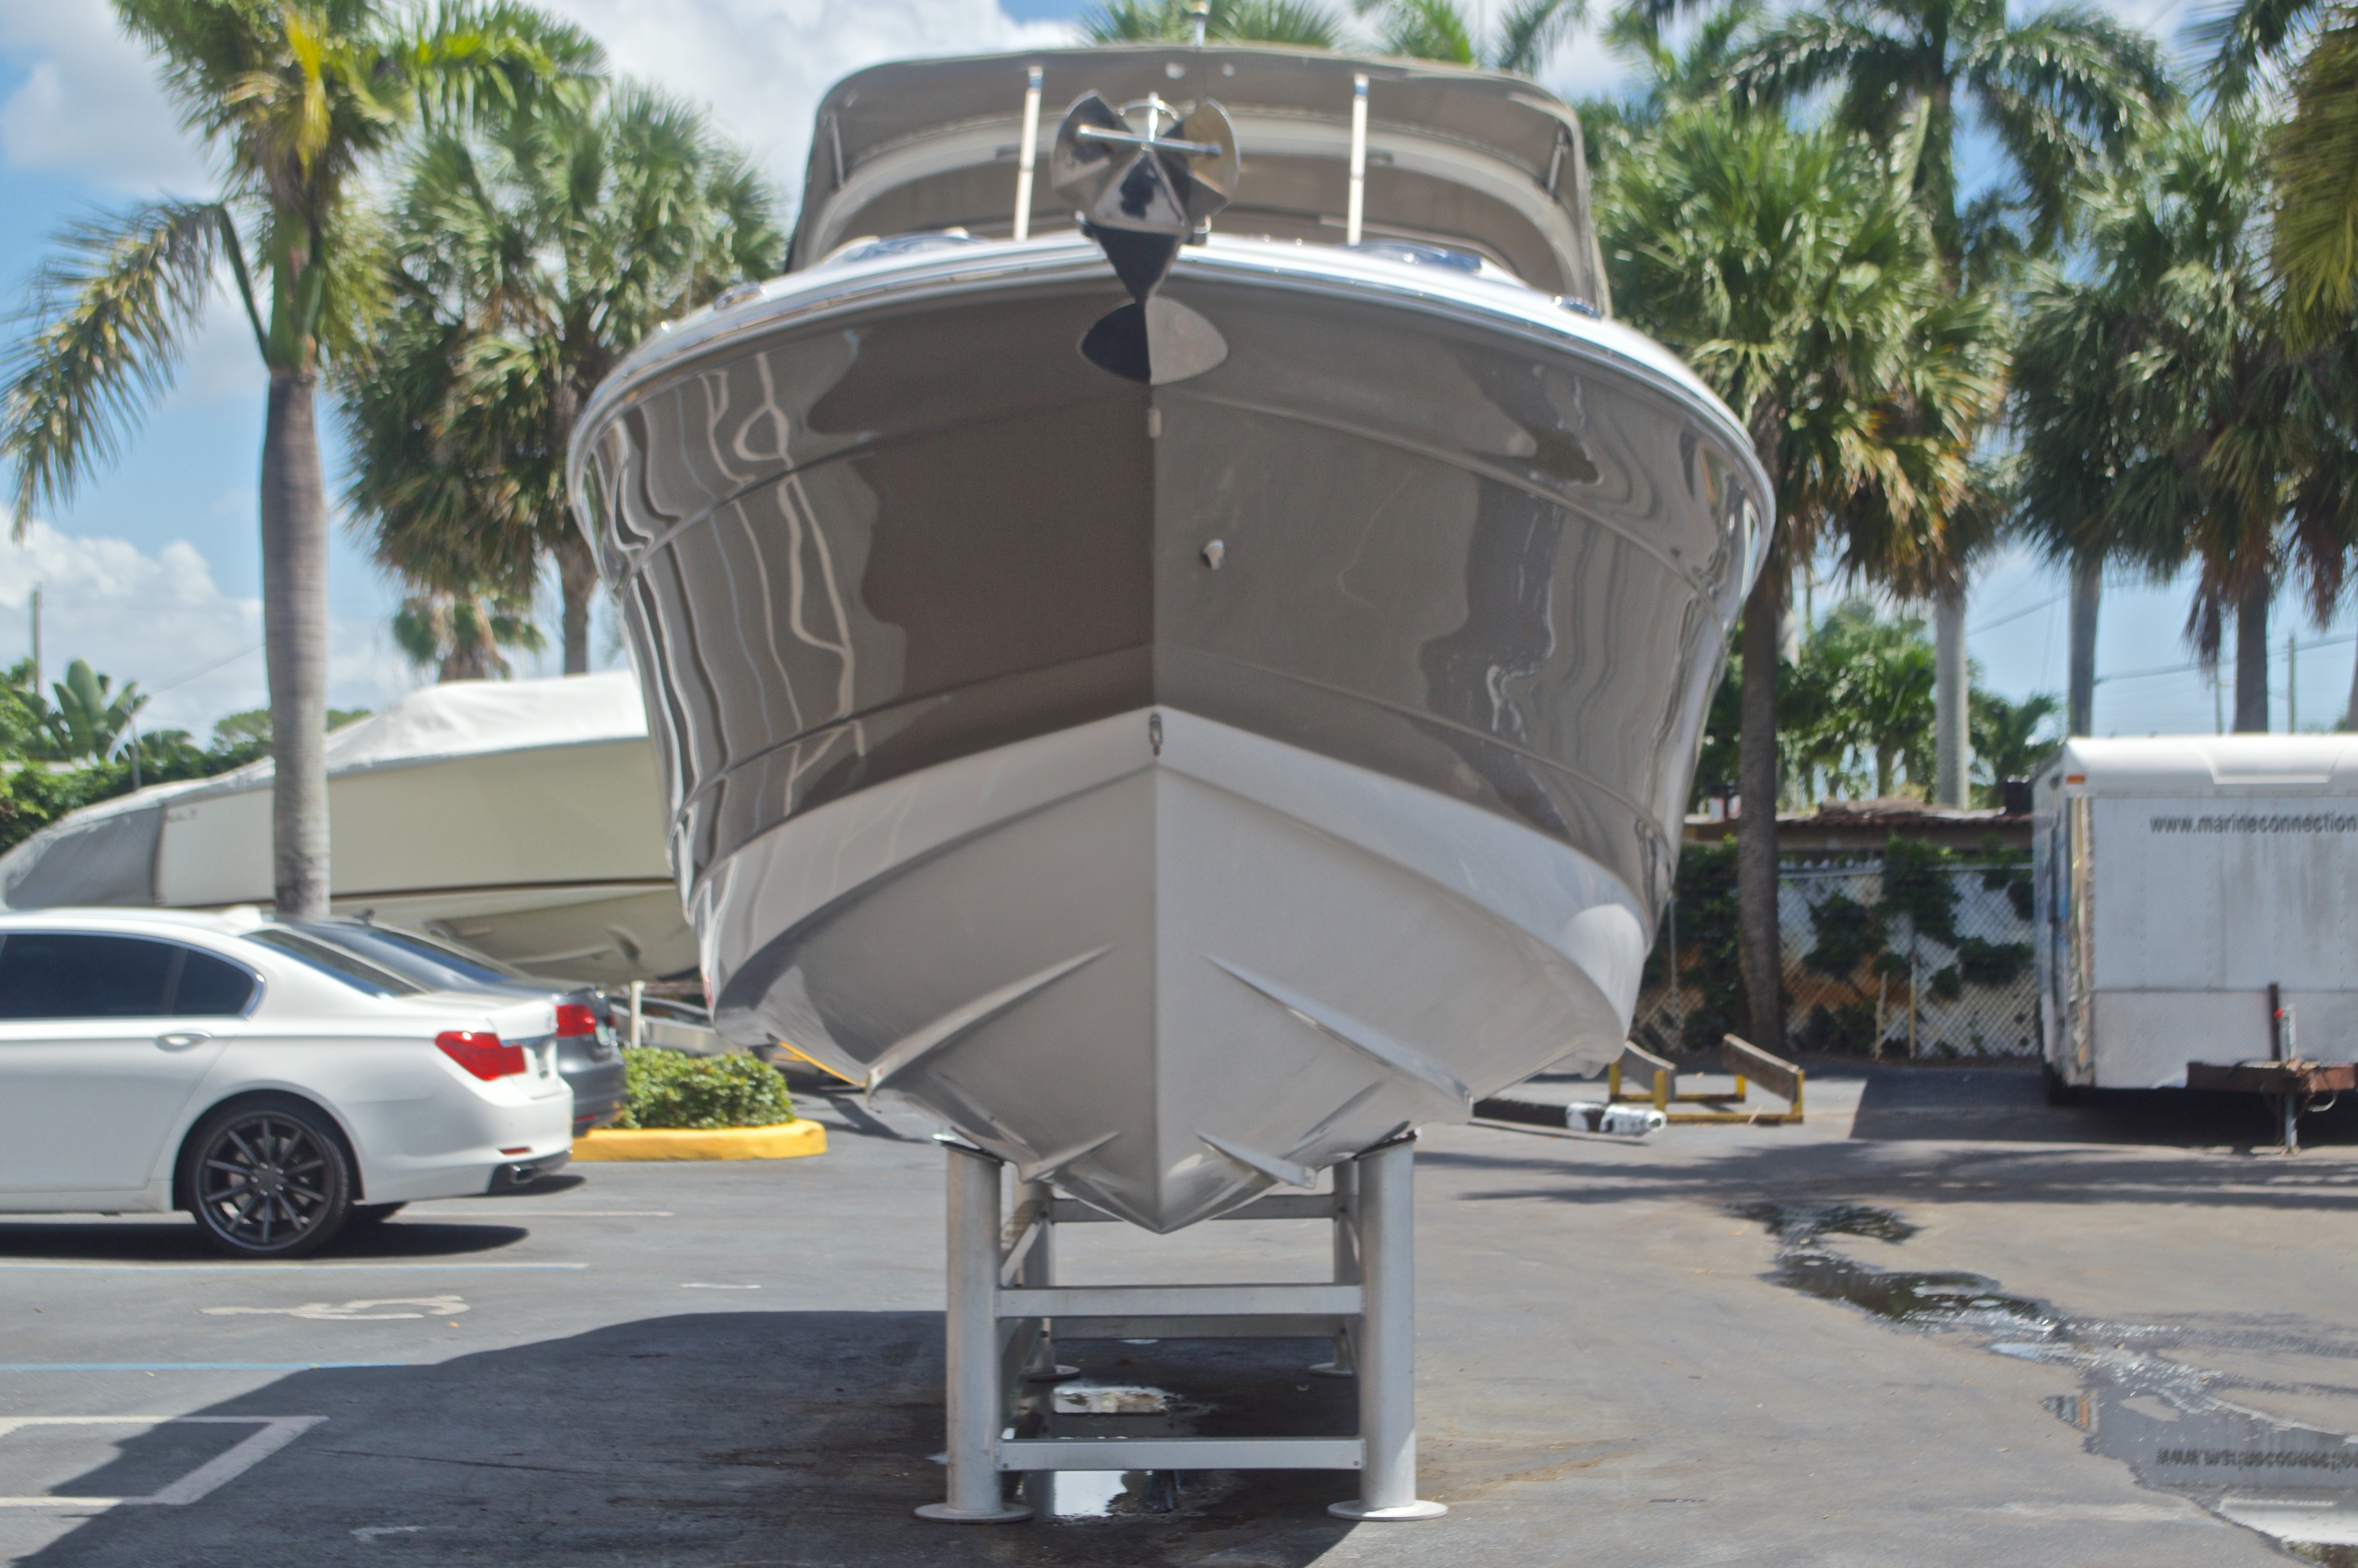 Thumbnail 9 for Used 2009 Crownline 300 LS boat for sale in West Palm Beach, FL